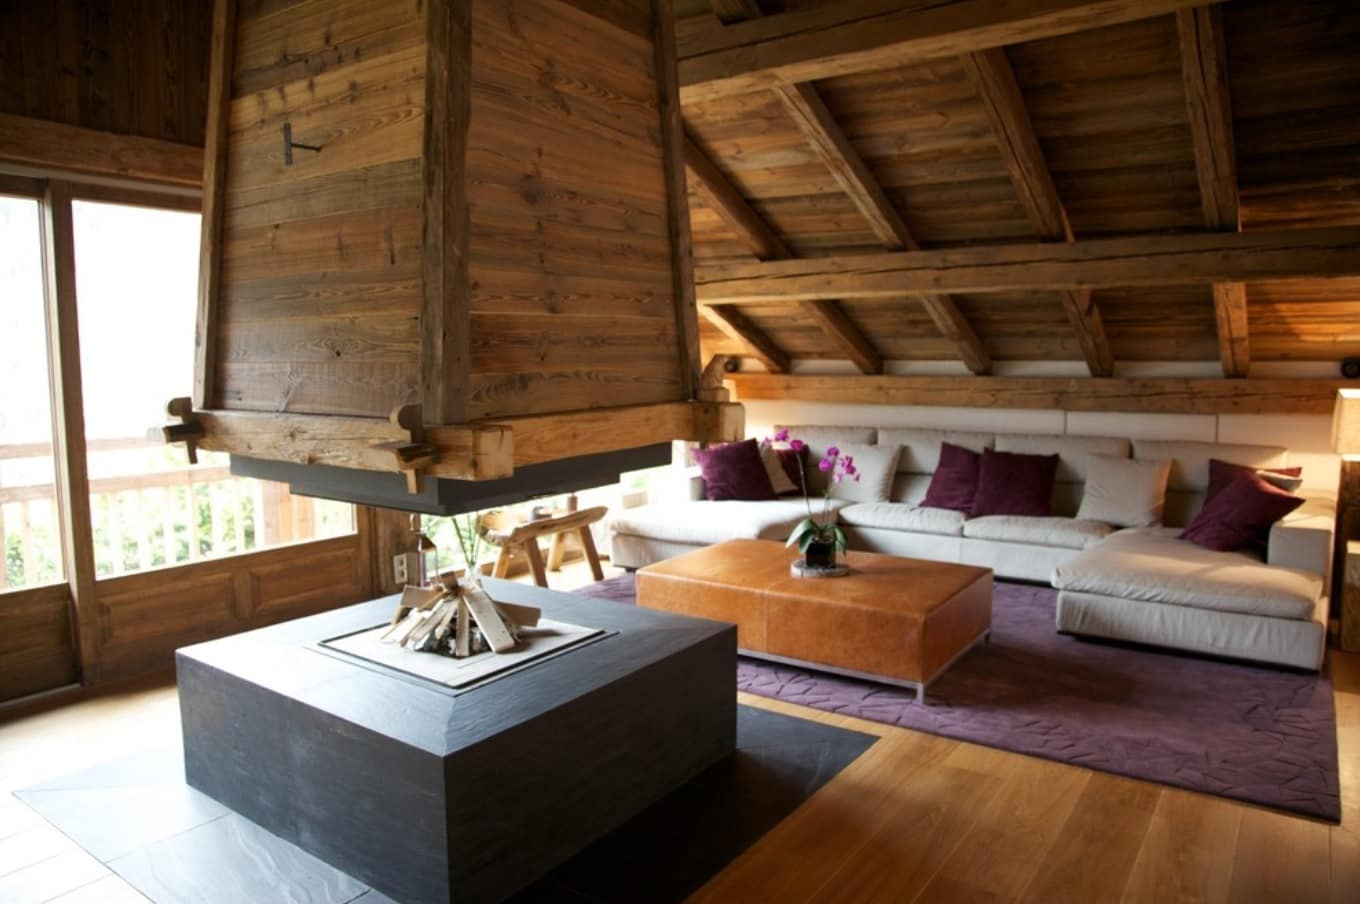 Unusual wooden decorated interior with central open fireplace